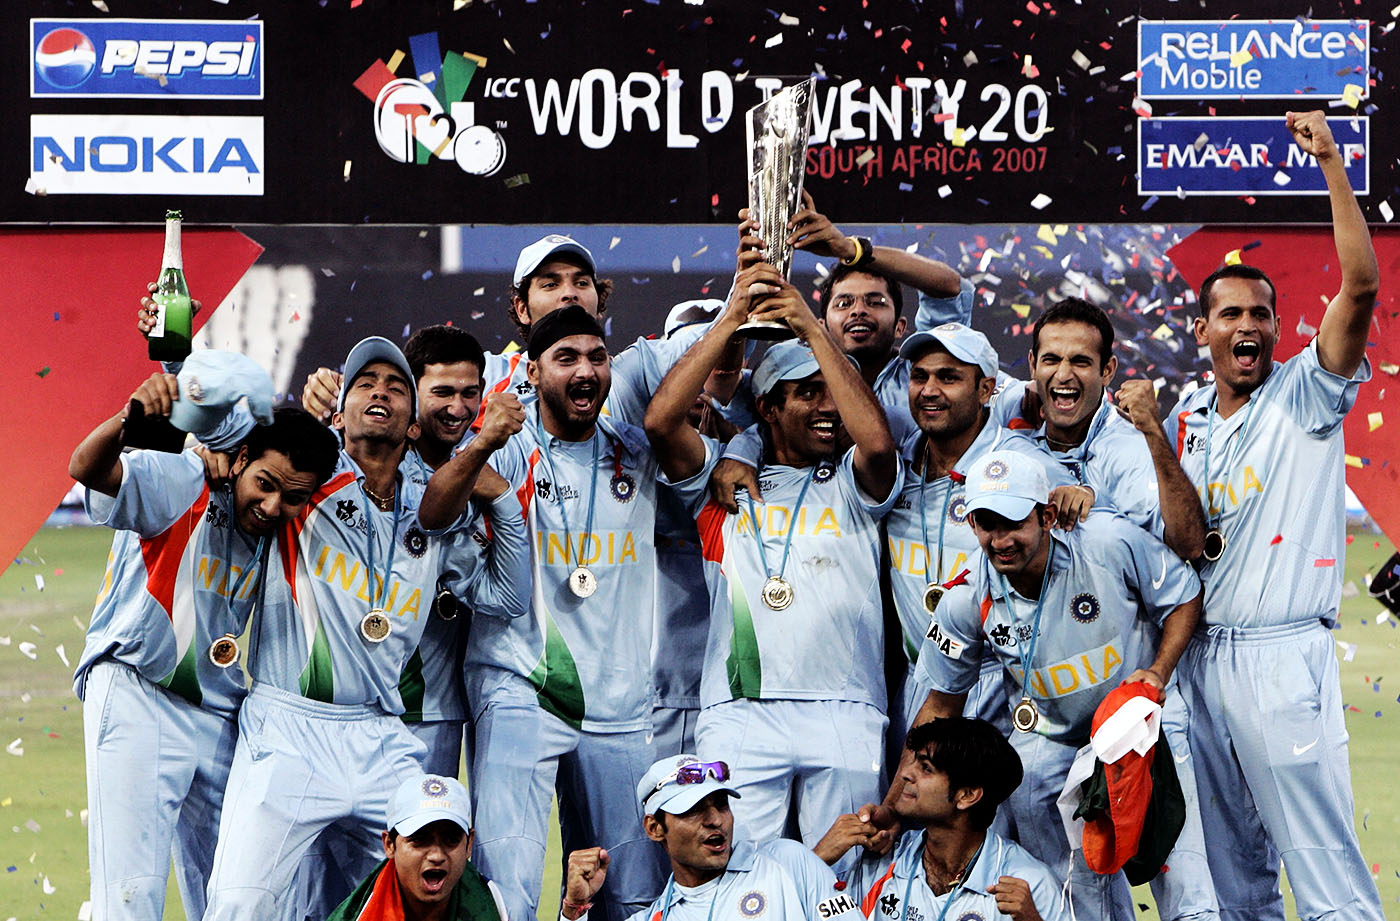 India lift the ICC Twenty20 Trophy after defeating Pakistan in a nail biting final